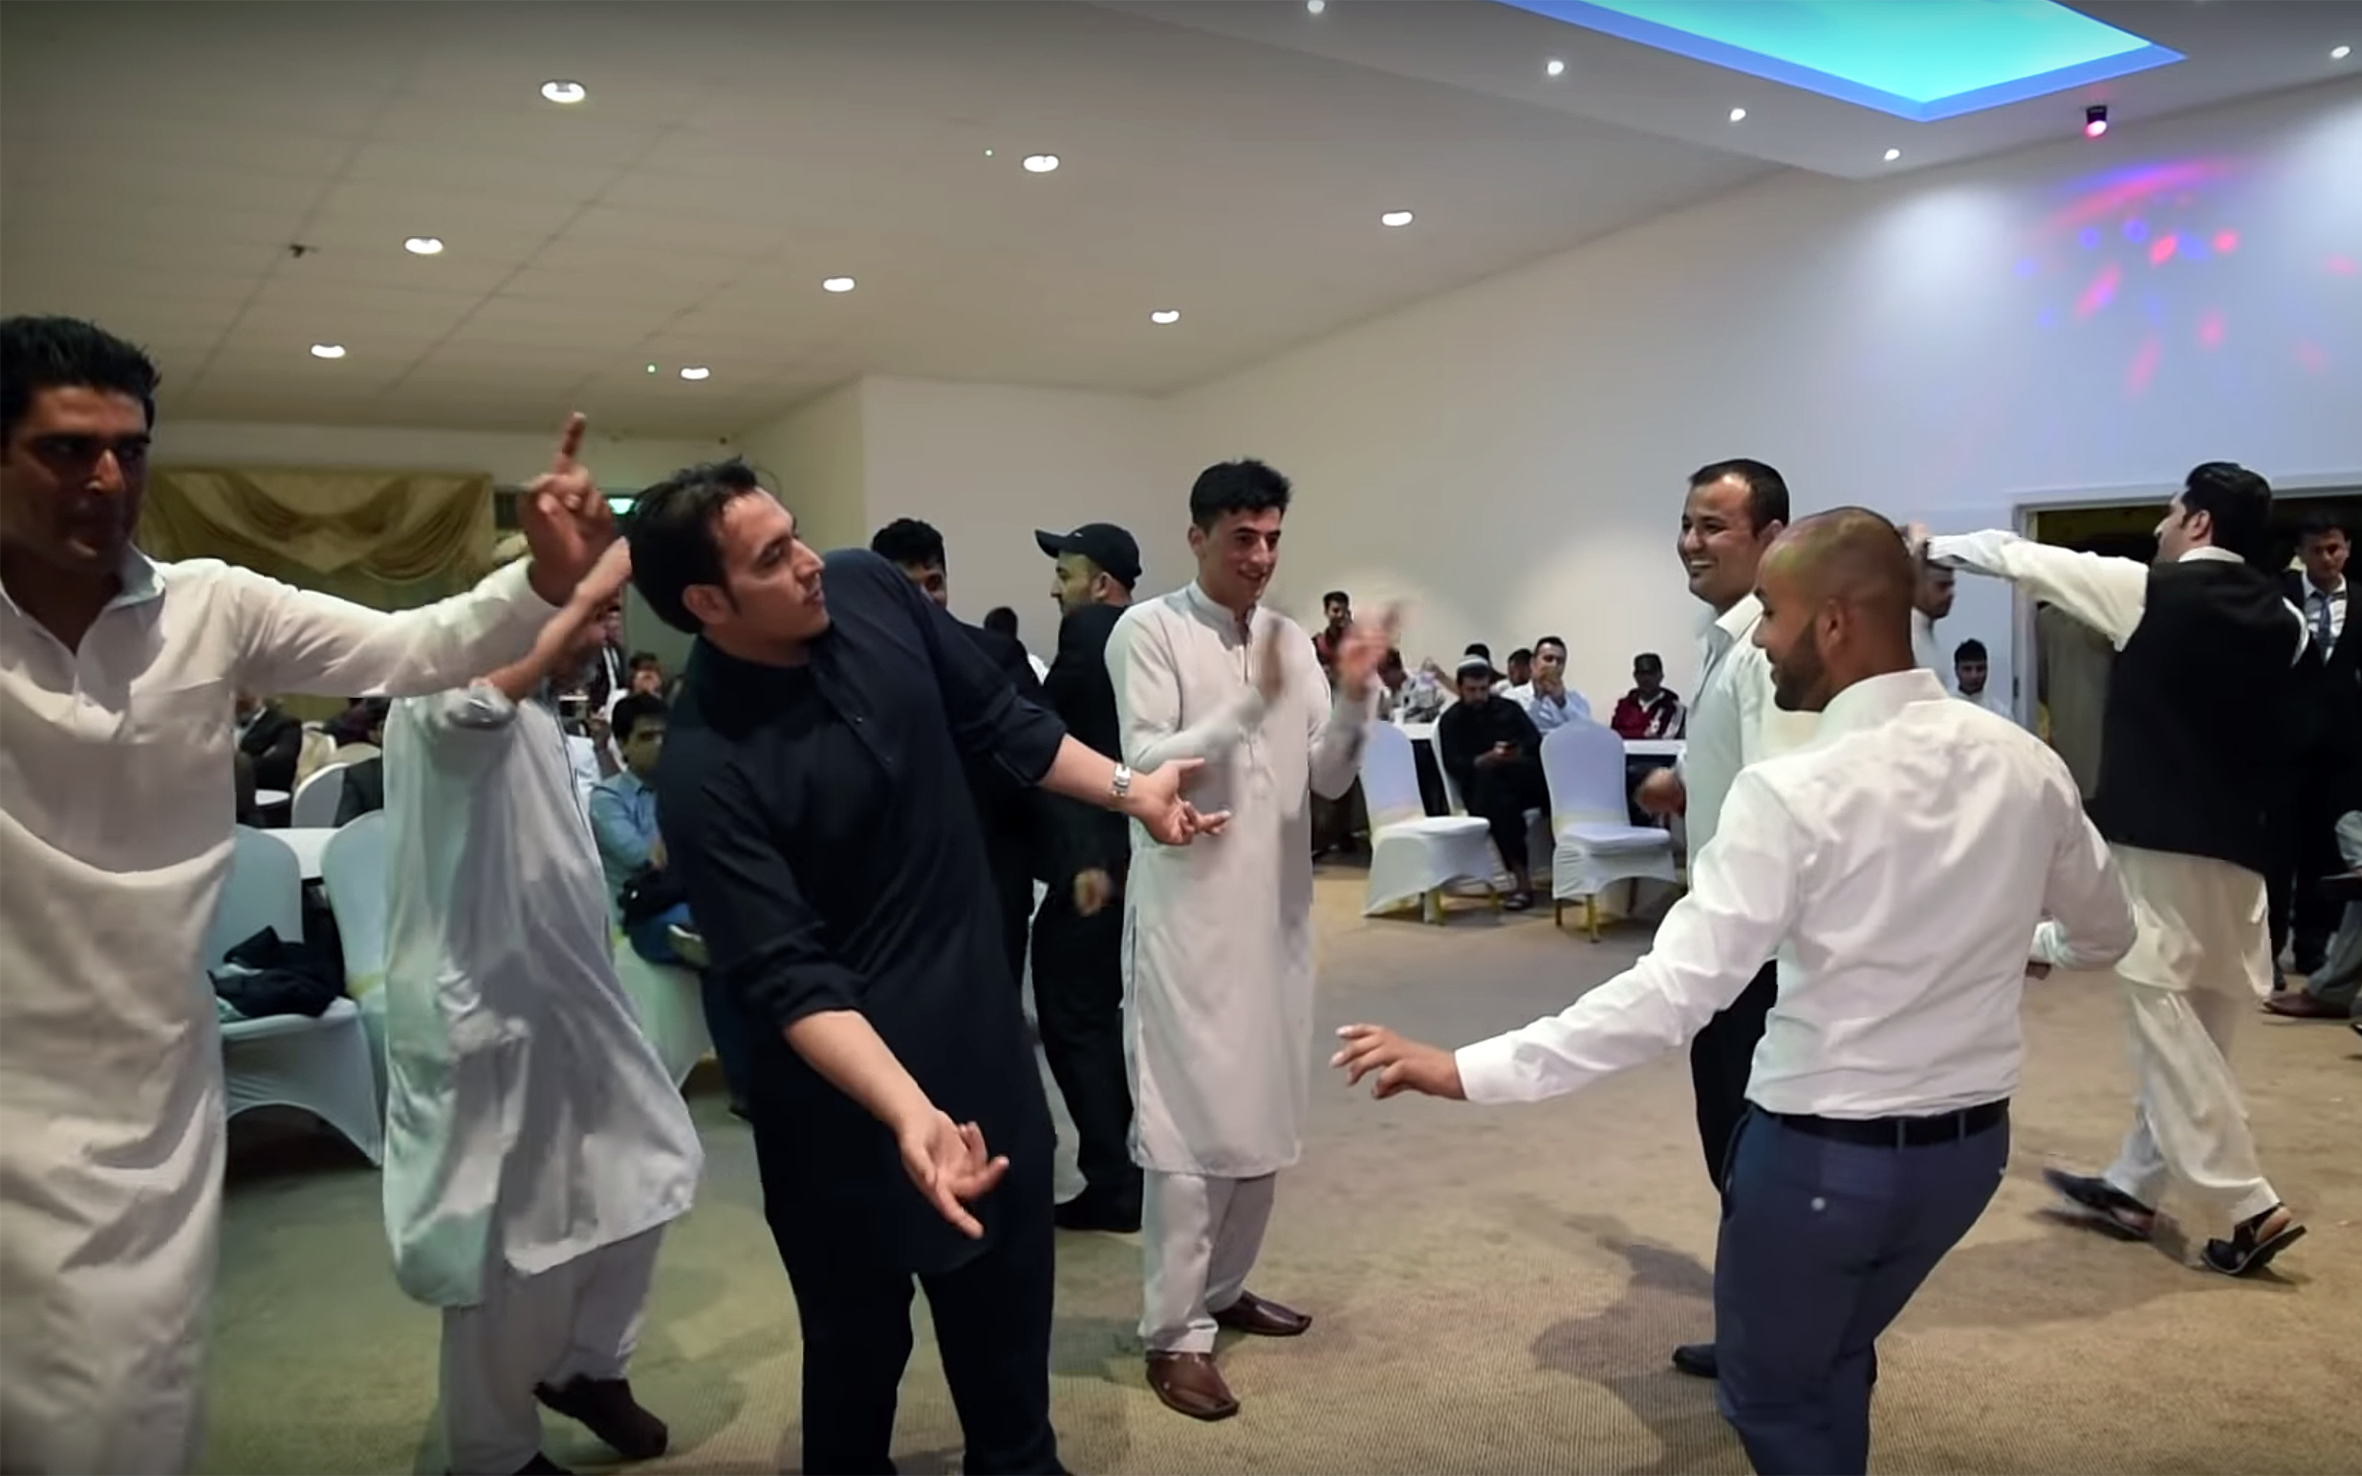 713.Qataghani / Afghanistan - QataghanI is one of the traditional dances of Afghanistan and also a music style. It is famous both in Afghanistan and in Pakistan. It is a fast paced and joyous kind of music and dance with fast movement of arms and hands as its main characteristics.